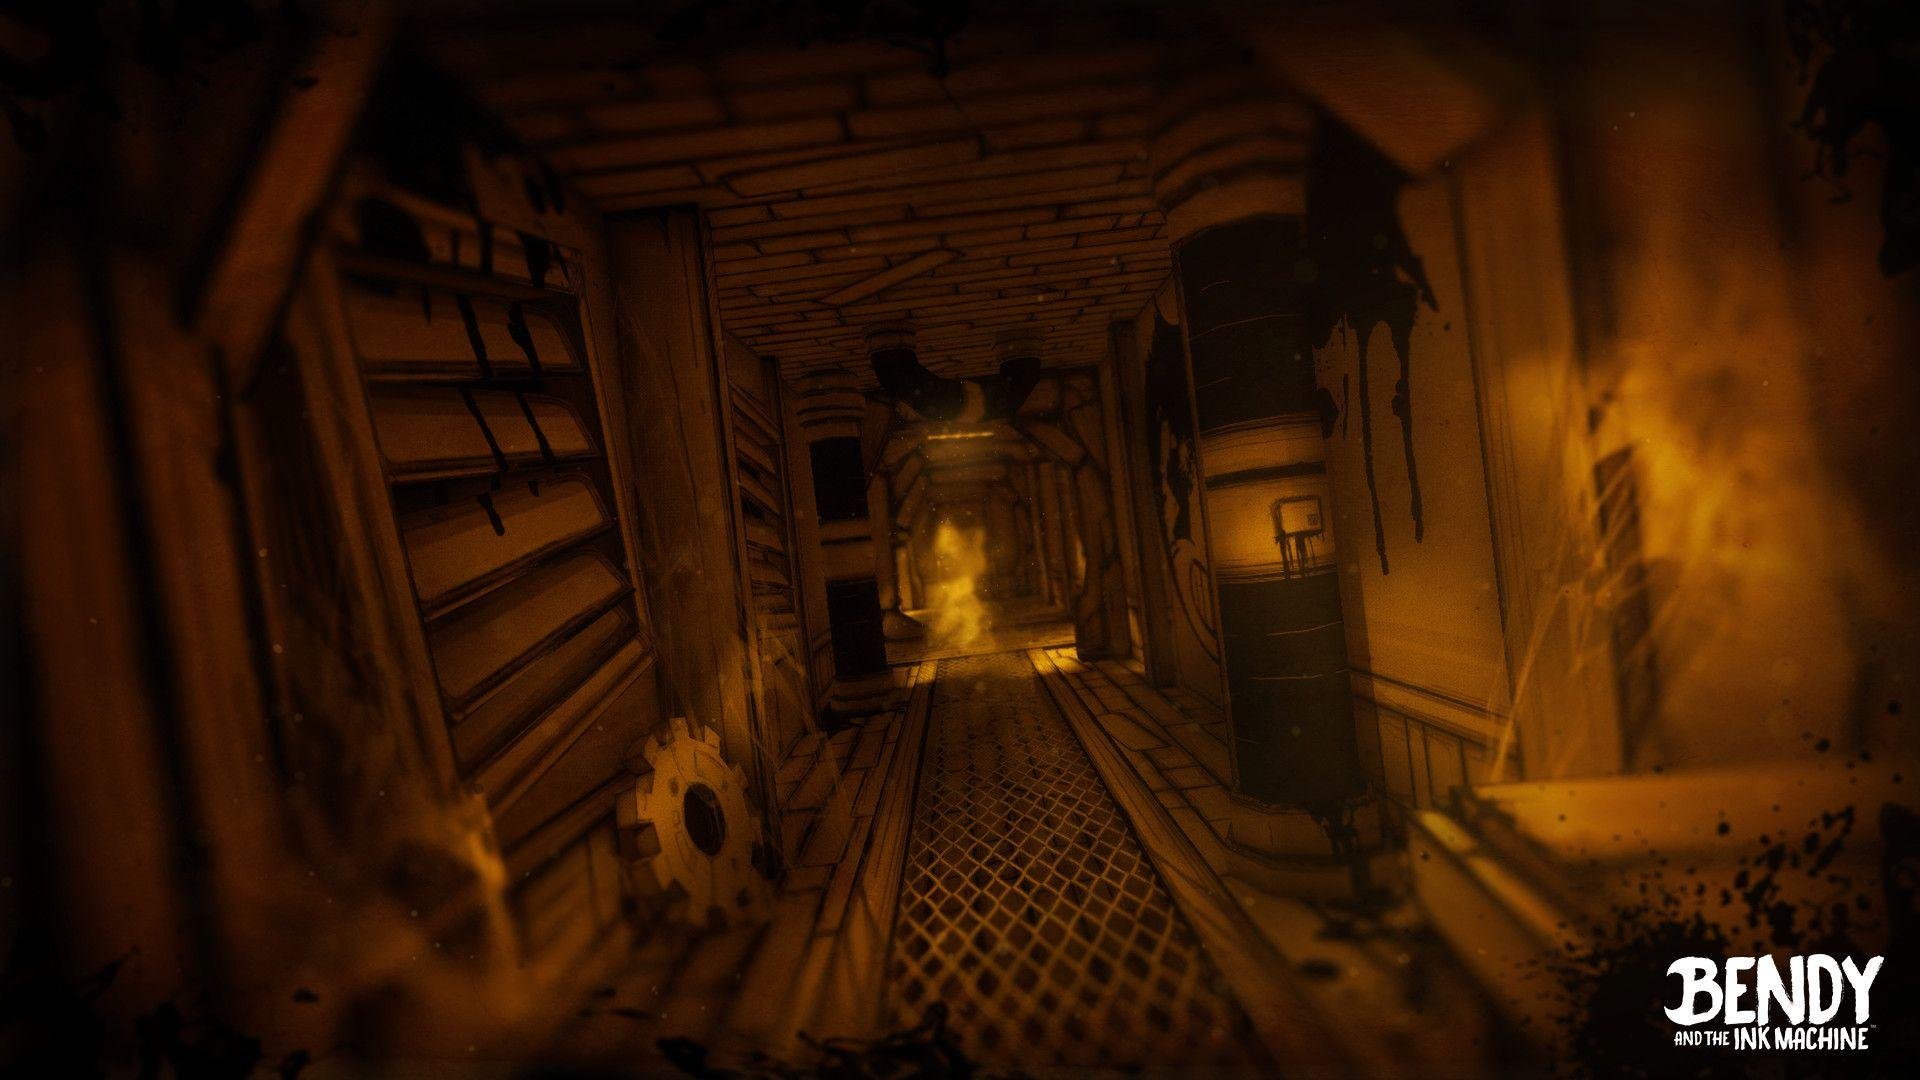 Bendy And The Ink Machine Hd Wallpapers Wallpaper Cave